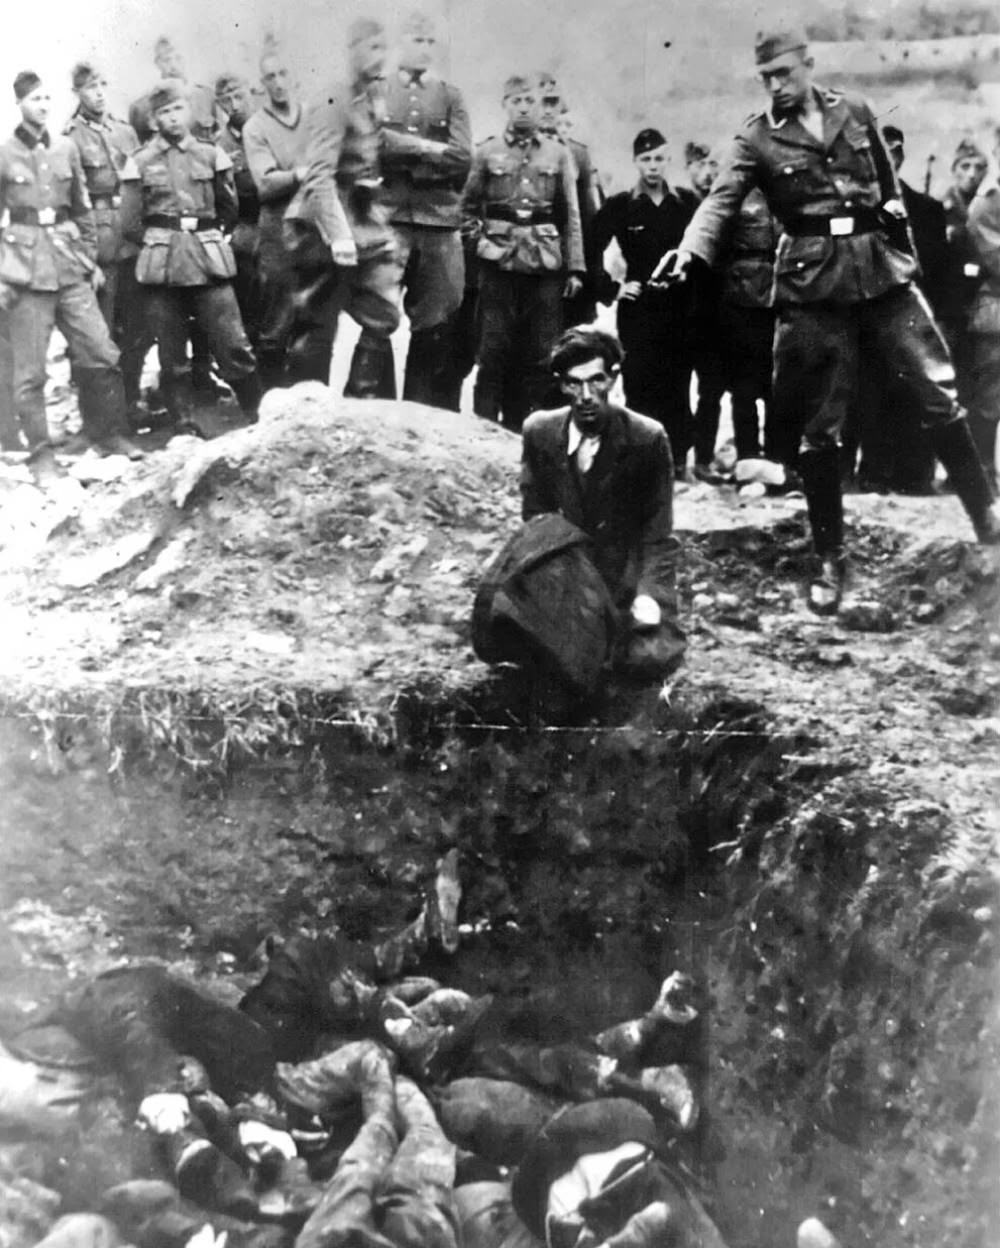 """The last Jew in Vinnitsa"" – Member of Einsatzgruppe D (a Nazi SS death squad) is just about to shoot a Jewish man kneeling"